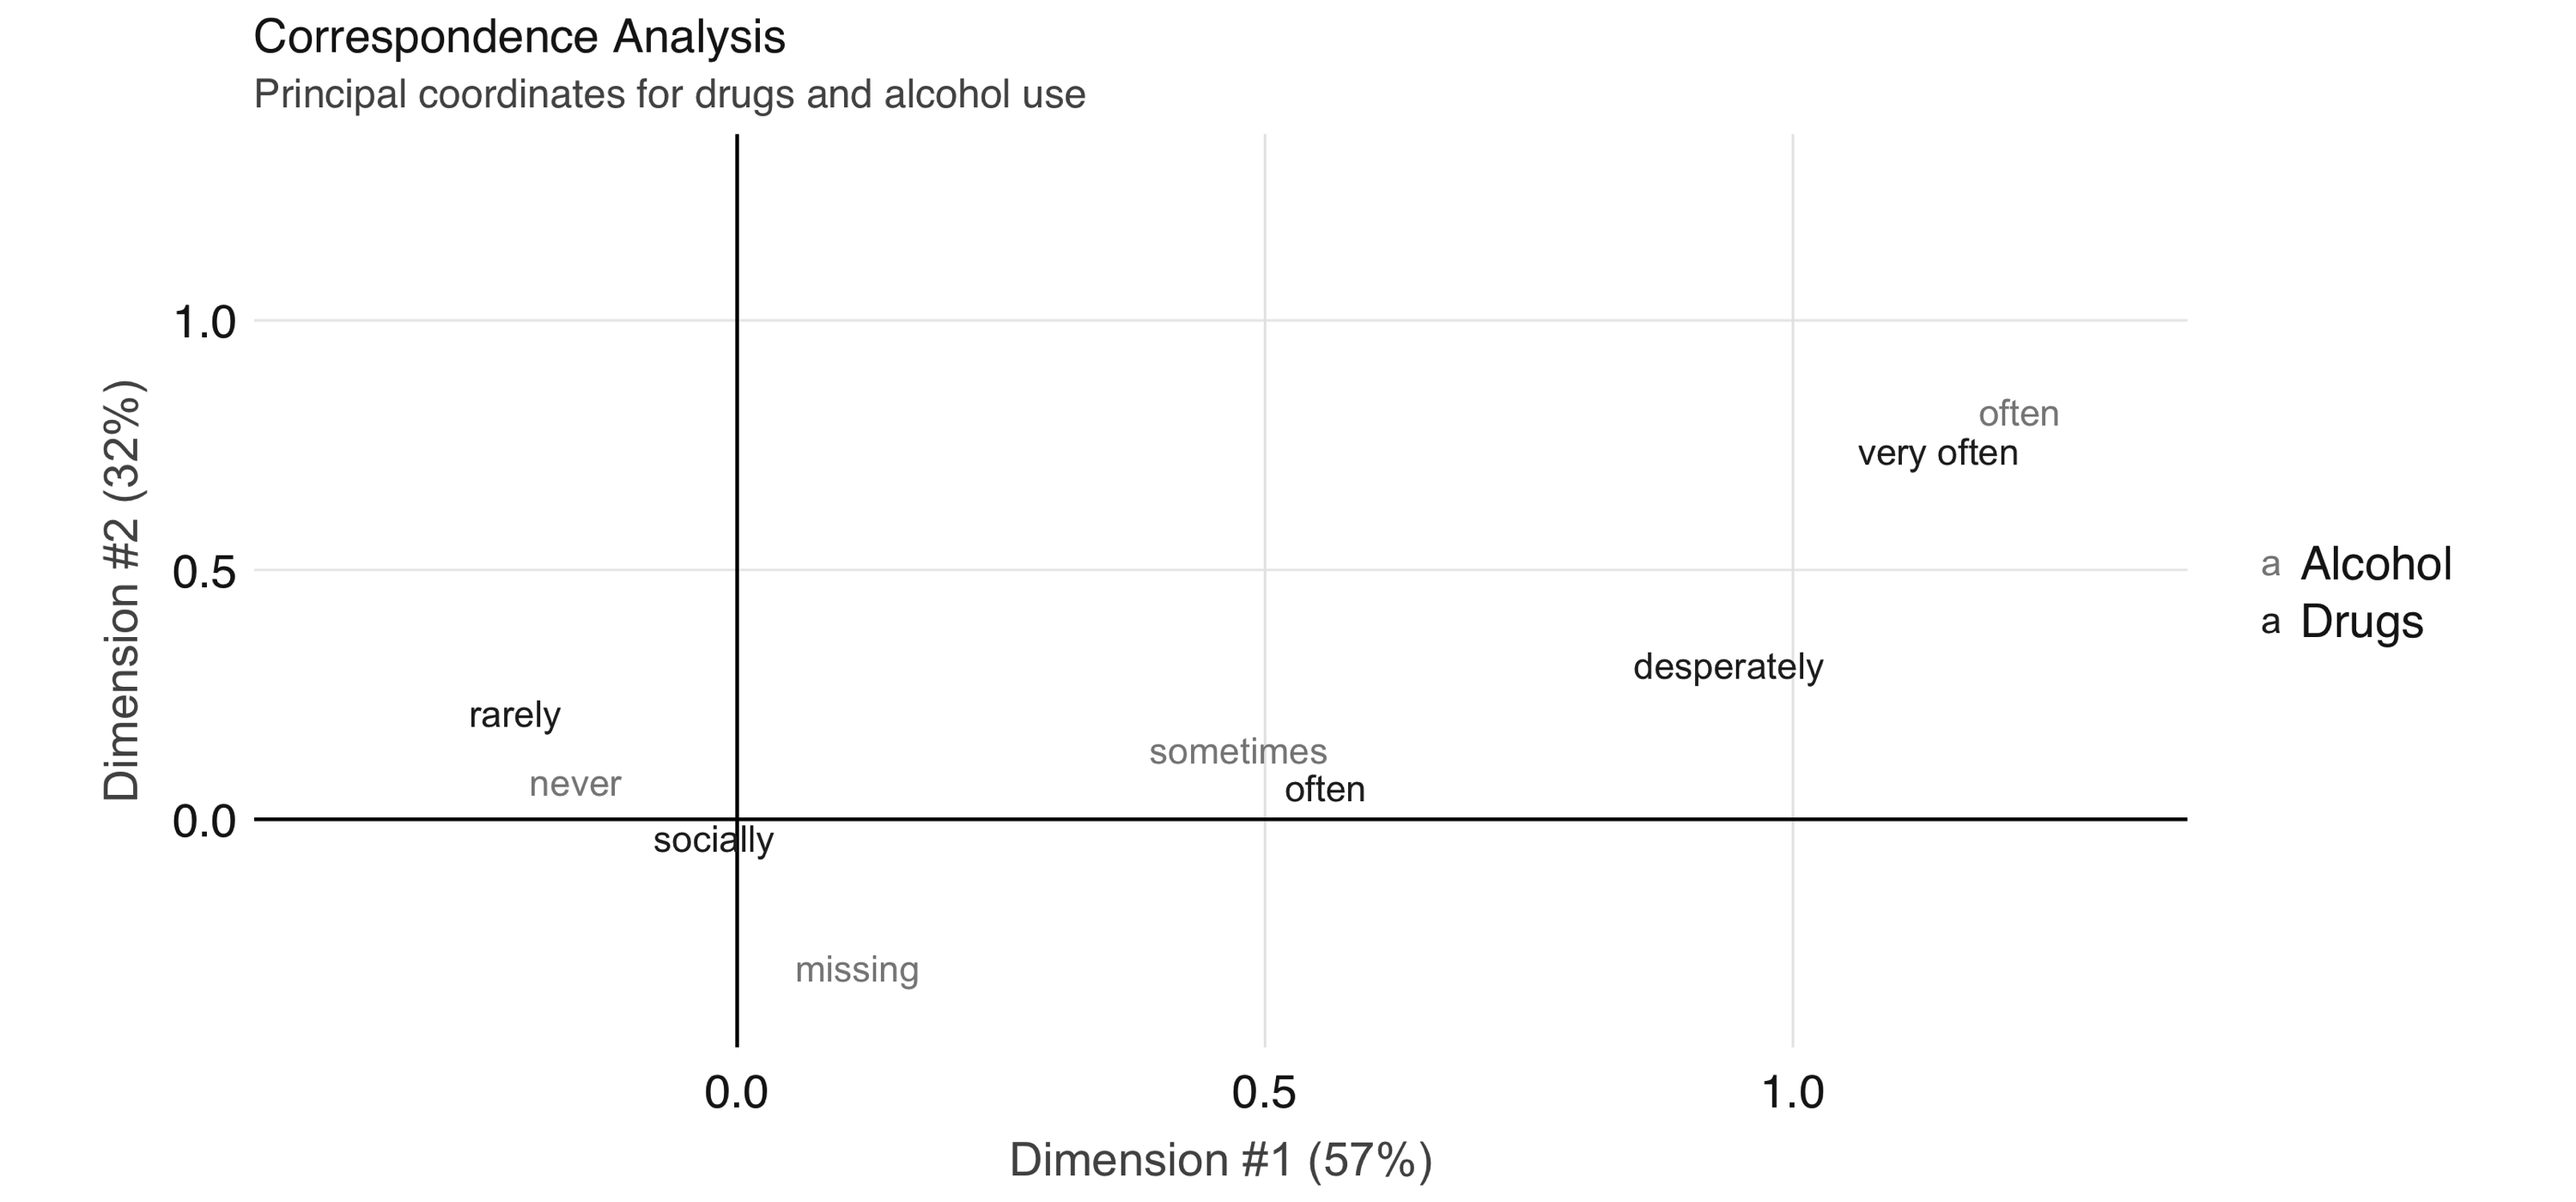 Correspondence analysis principal coordinates for drugs and alcohol use